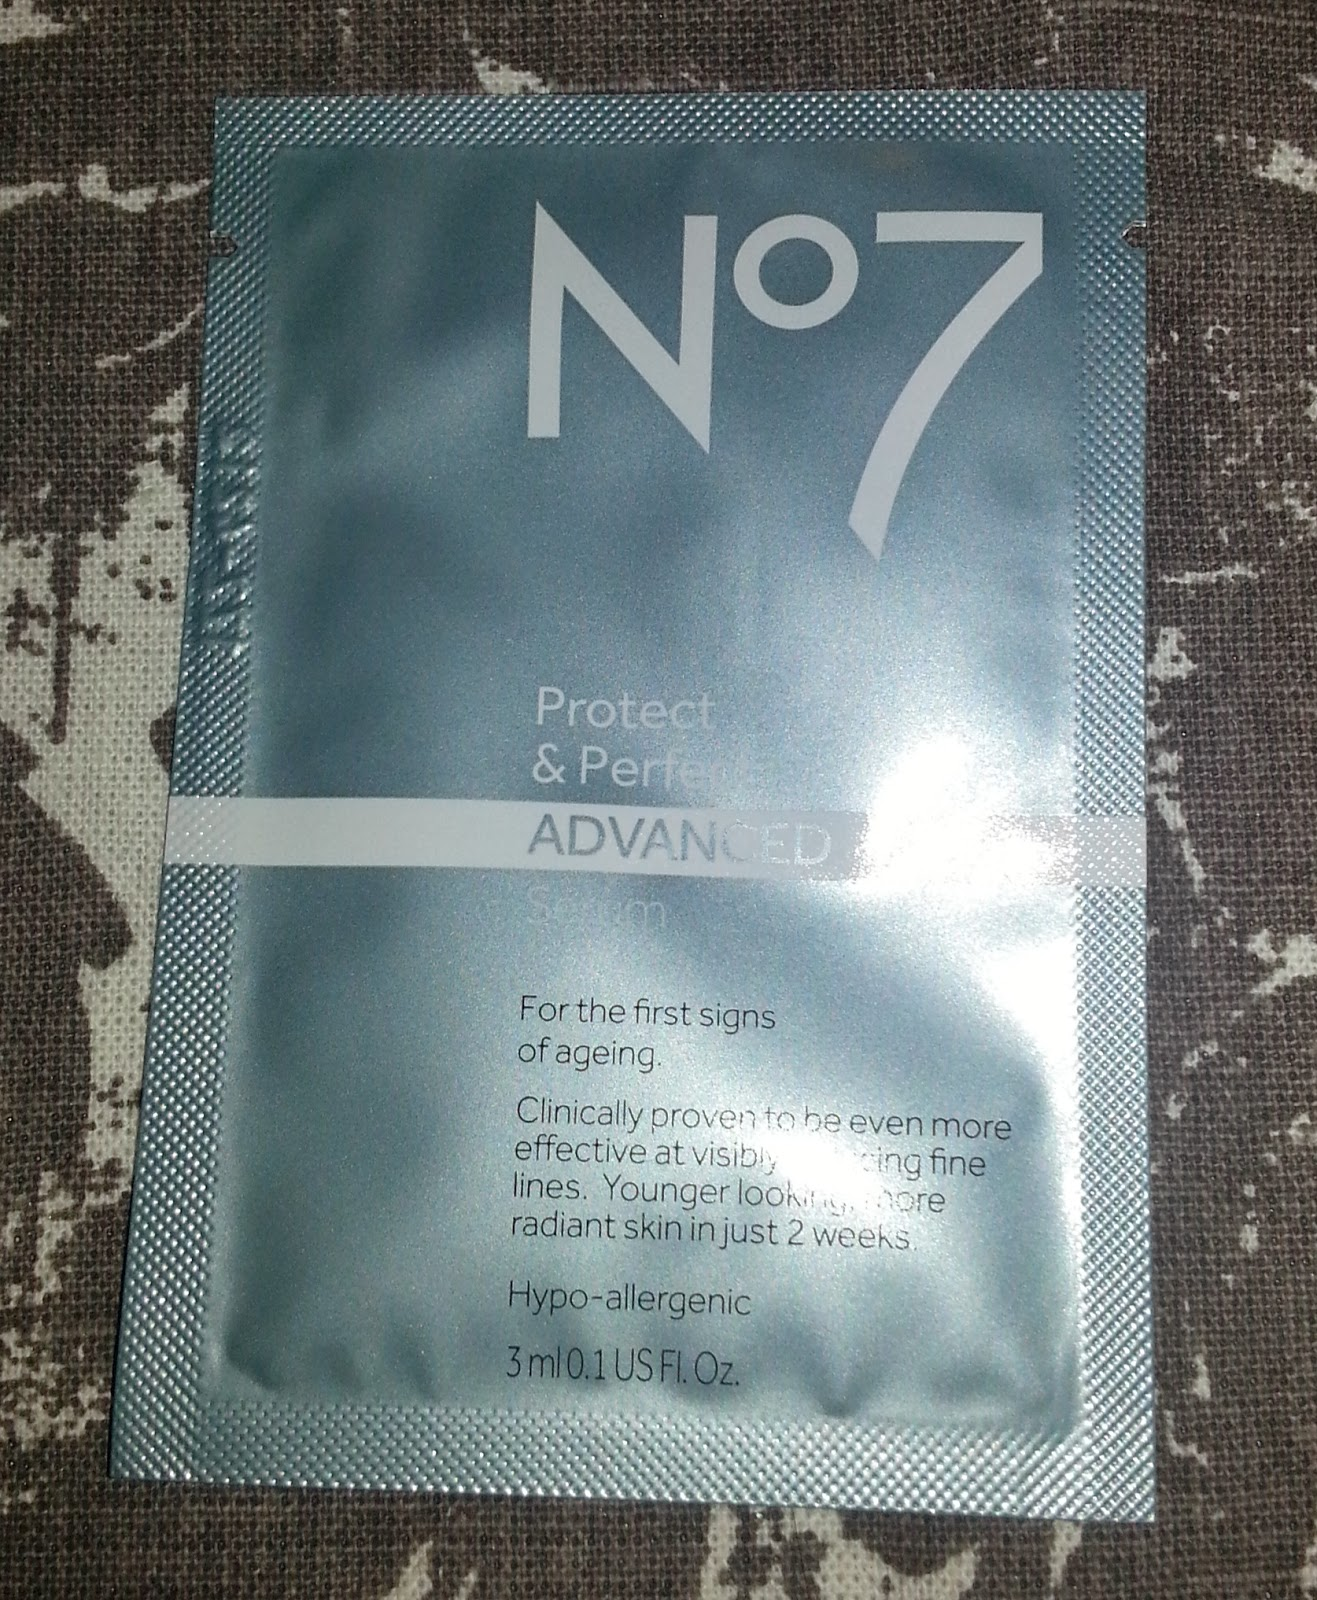 No7 Protect and Perfect Advanced Serum